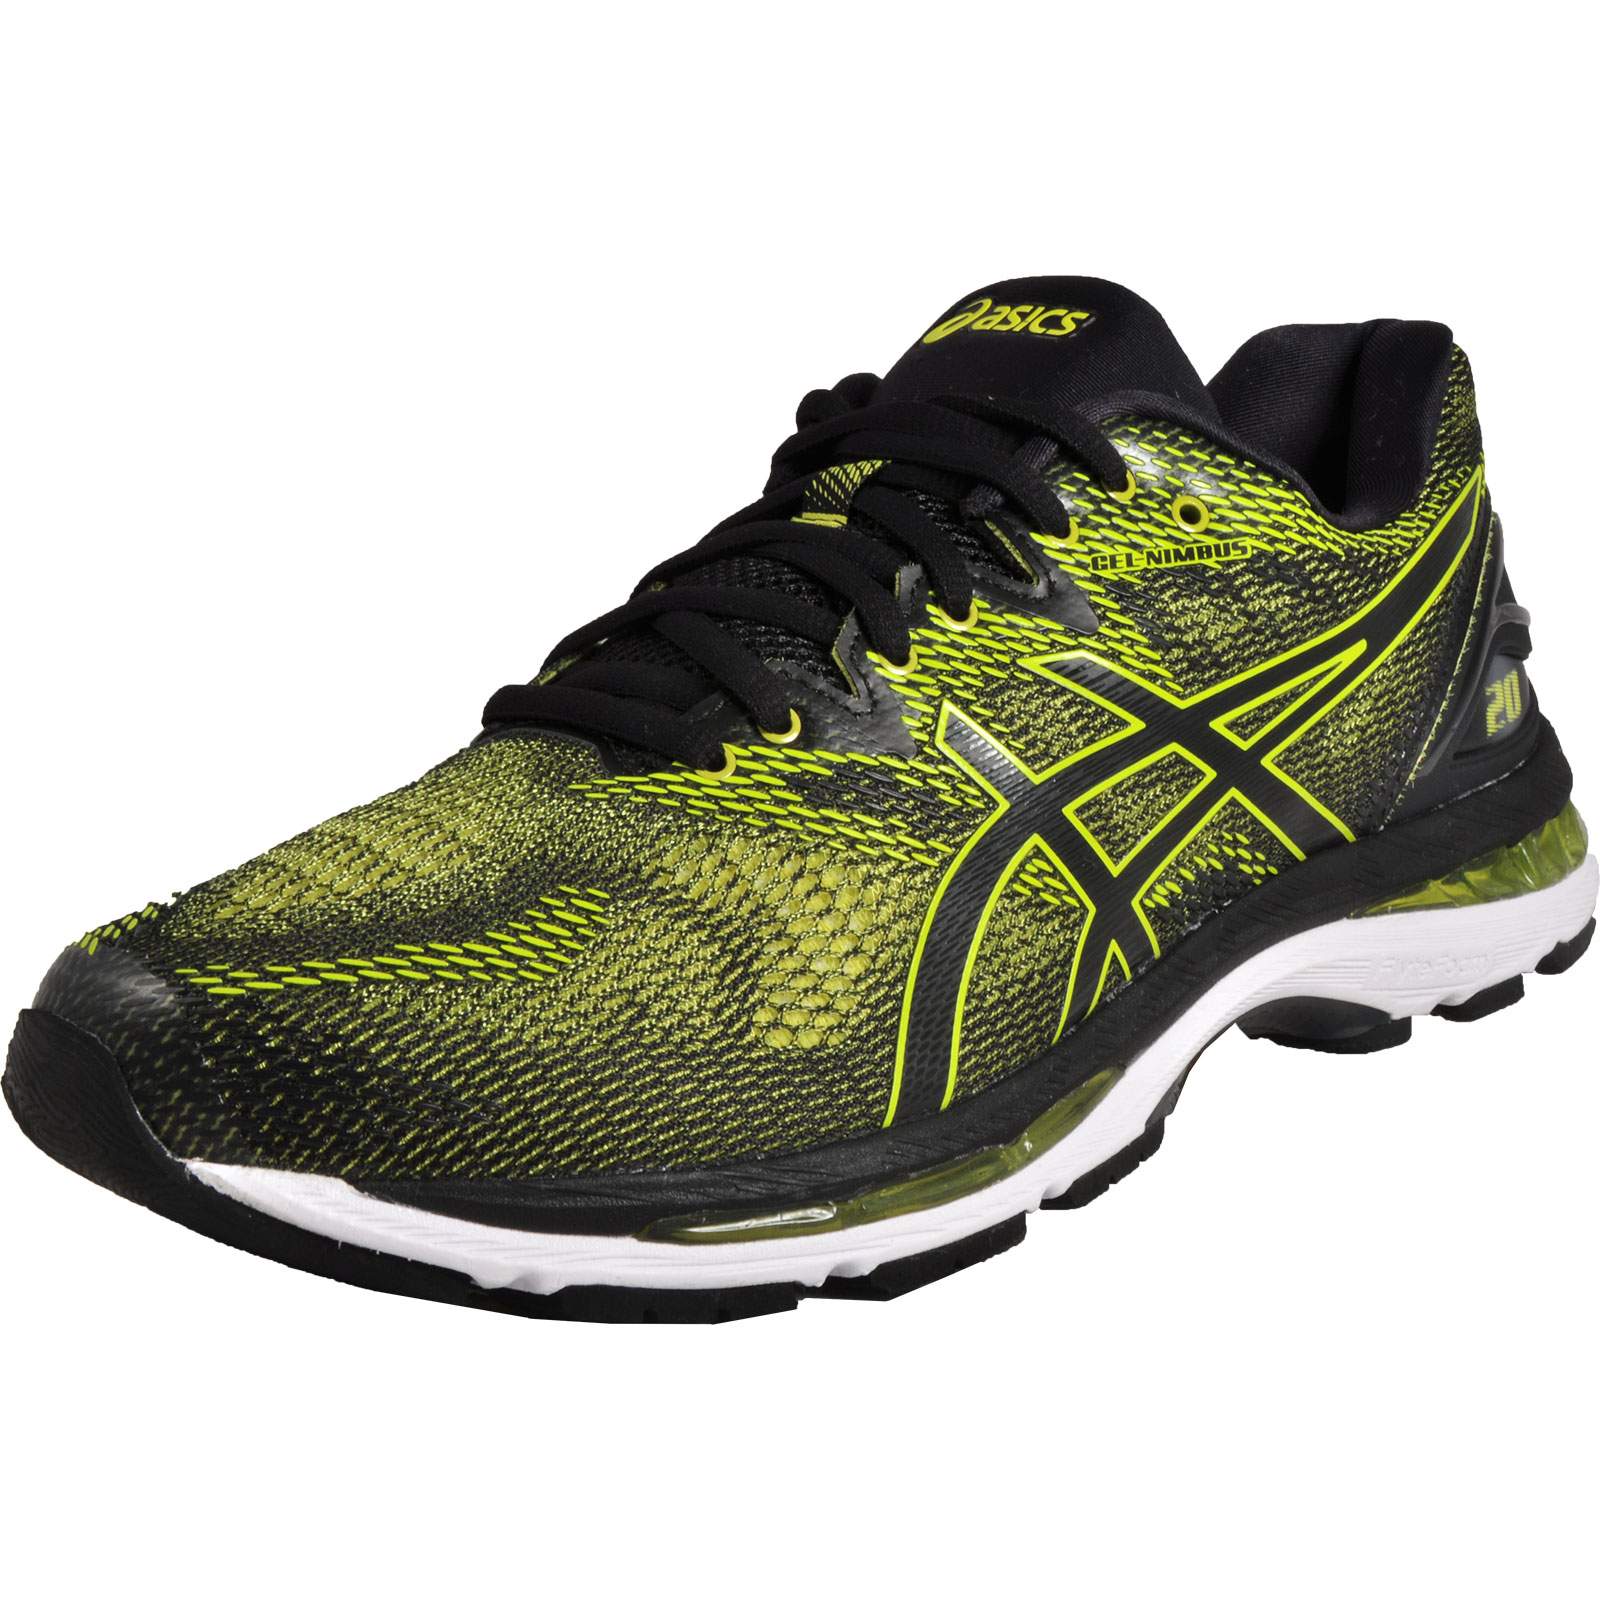 Asics Gel-Nimbus 20 Mens Premium Running Shoes Fitness Gym Trainers Green  Black